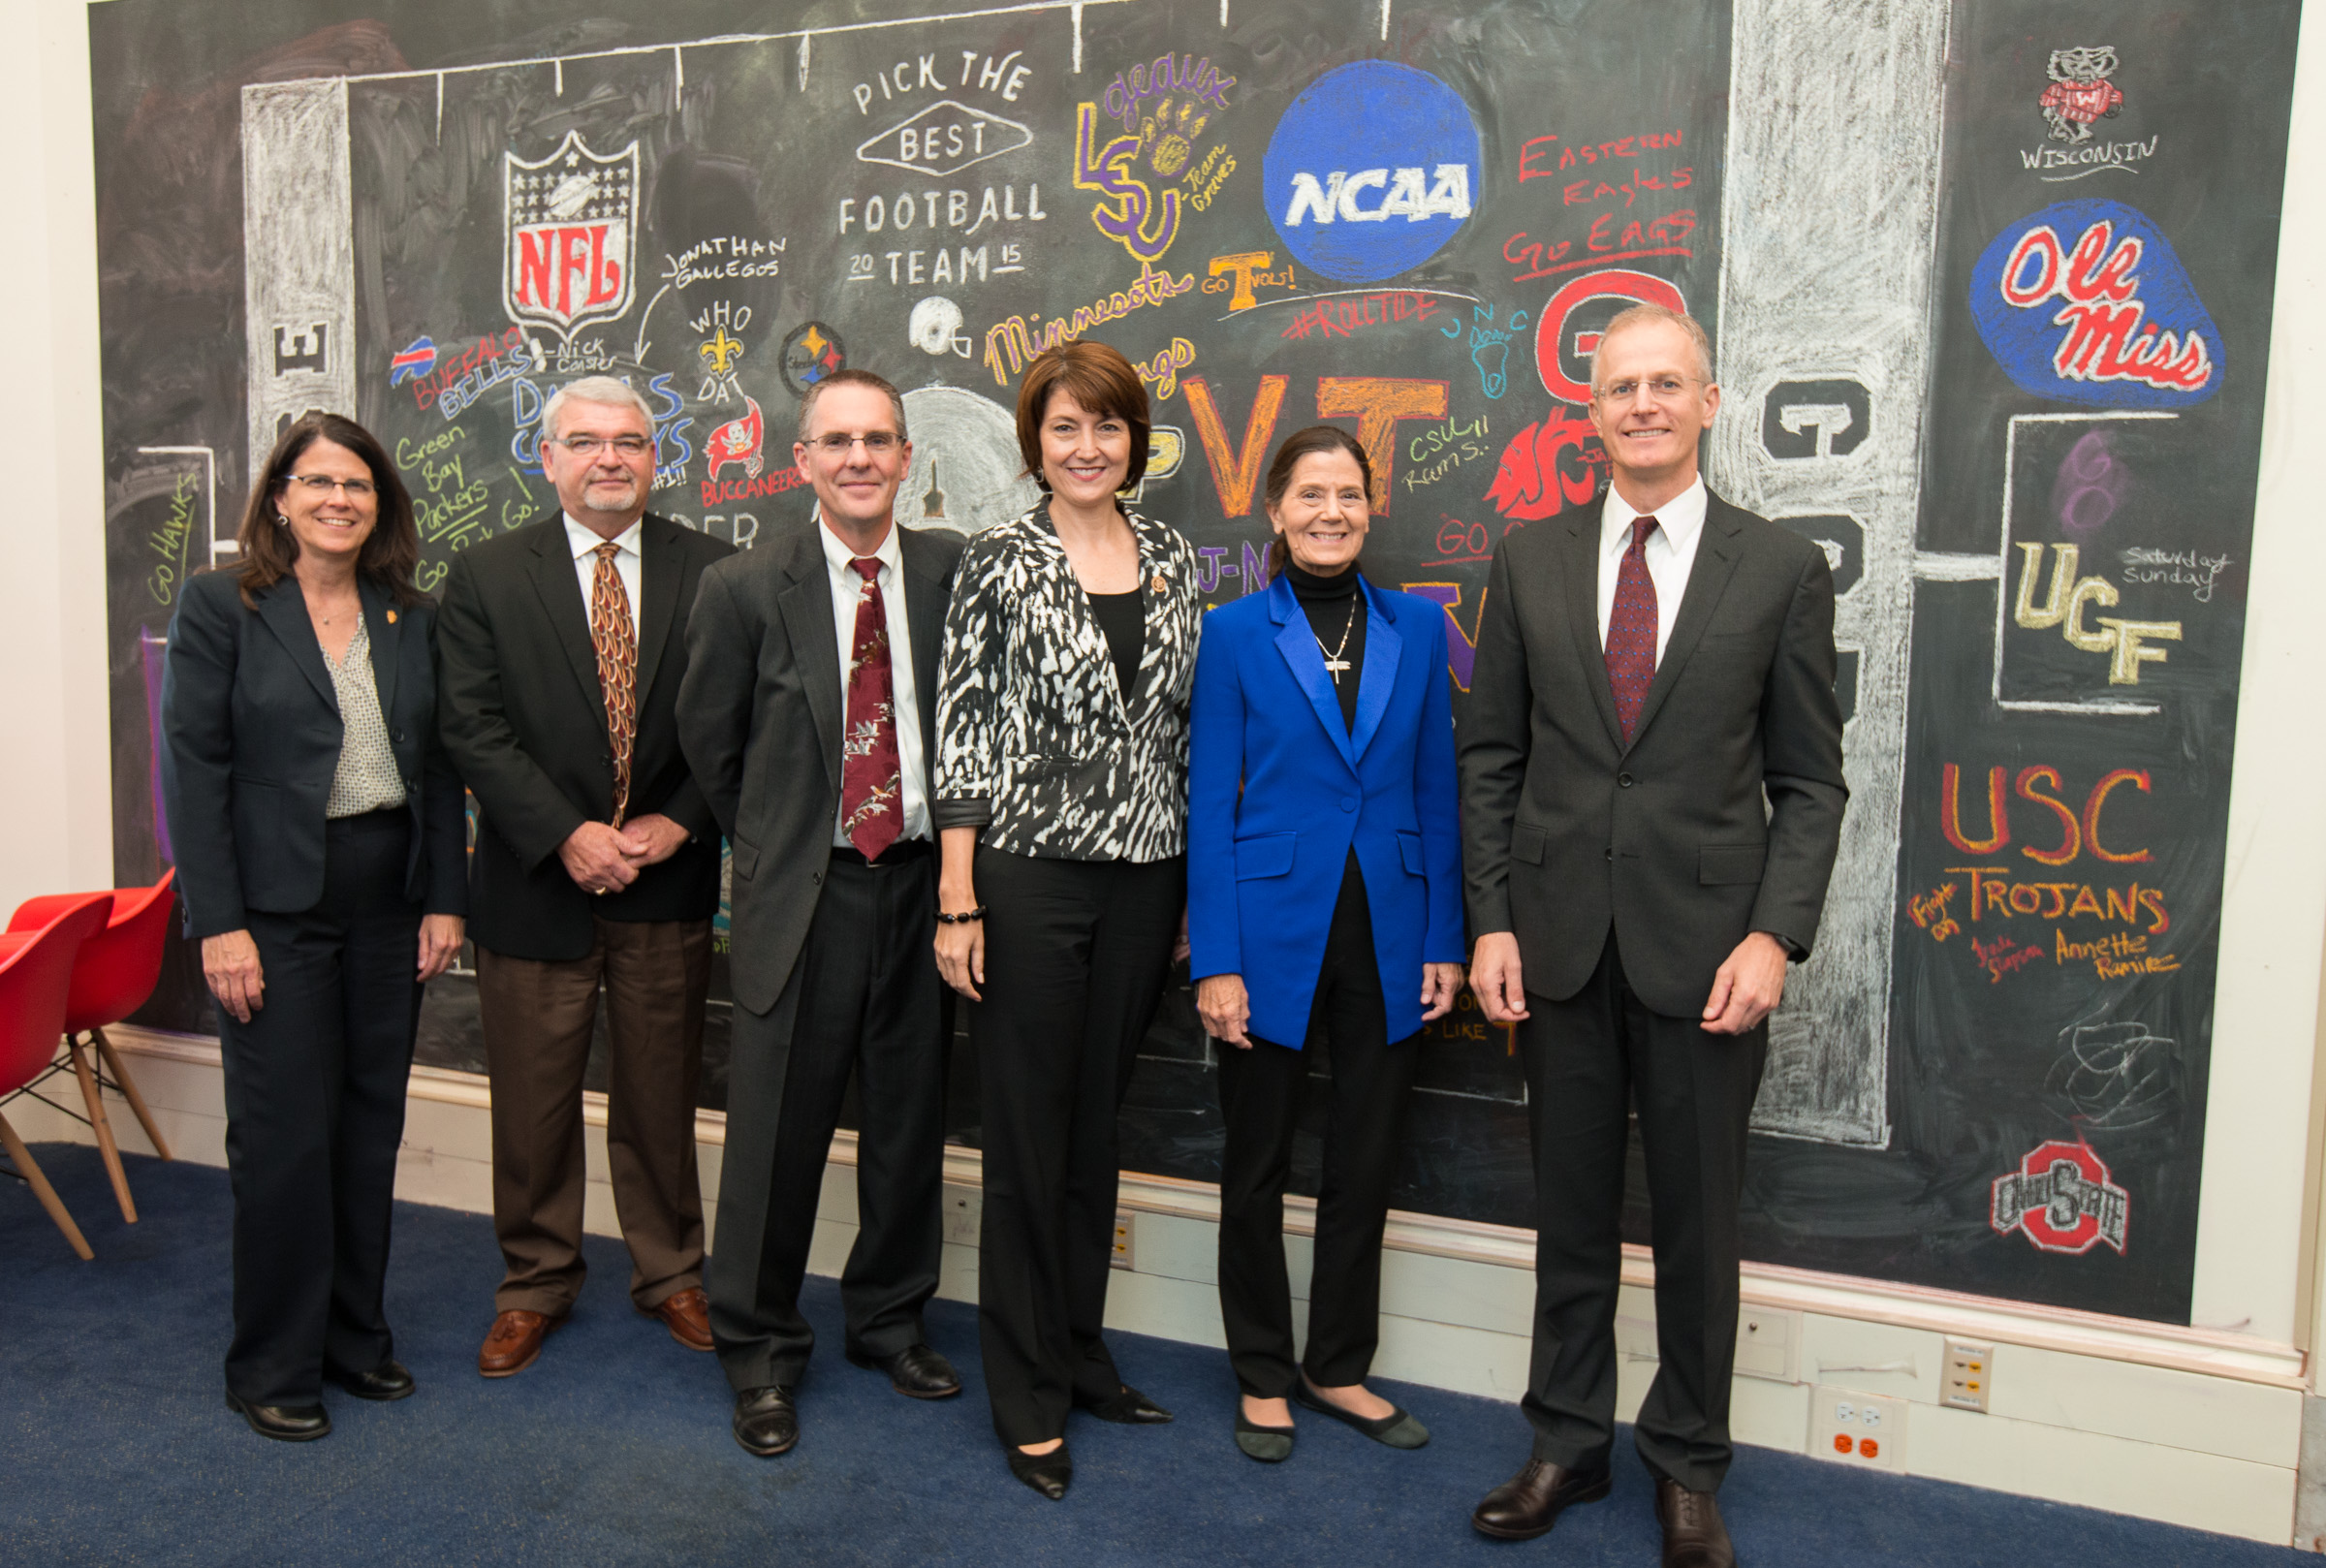 From left to right: Federal Government Relations Director Cathy Baker, Board Member Bruce Nelson, Board Chair Byron Bishop, Congresswoman Cathy McMorris Rodgers (R-Spokane). Global Director of Public Policy for the Conservancy Lynn Scarlett, Washington State Director Mike Stevens.